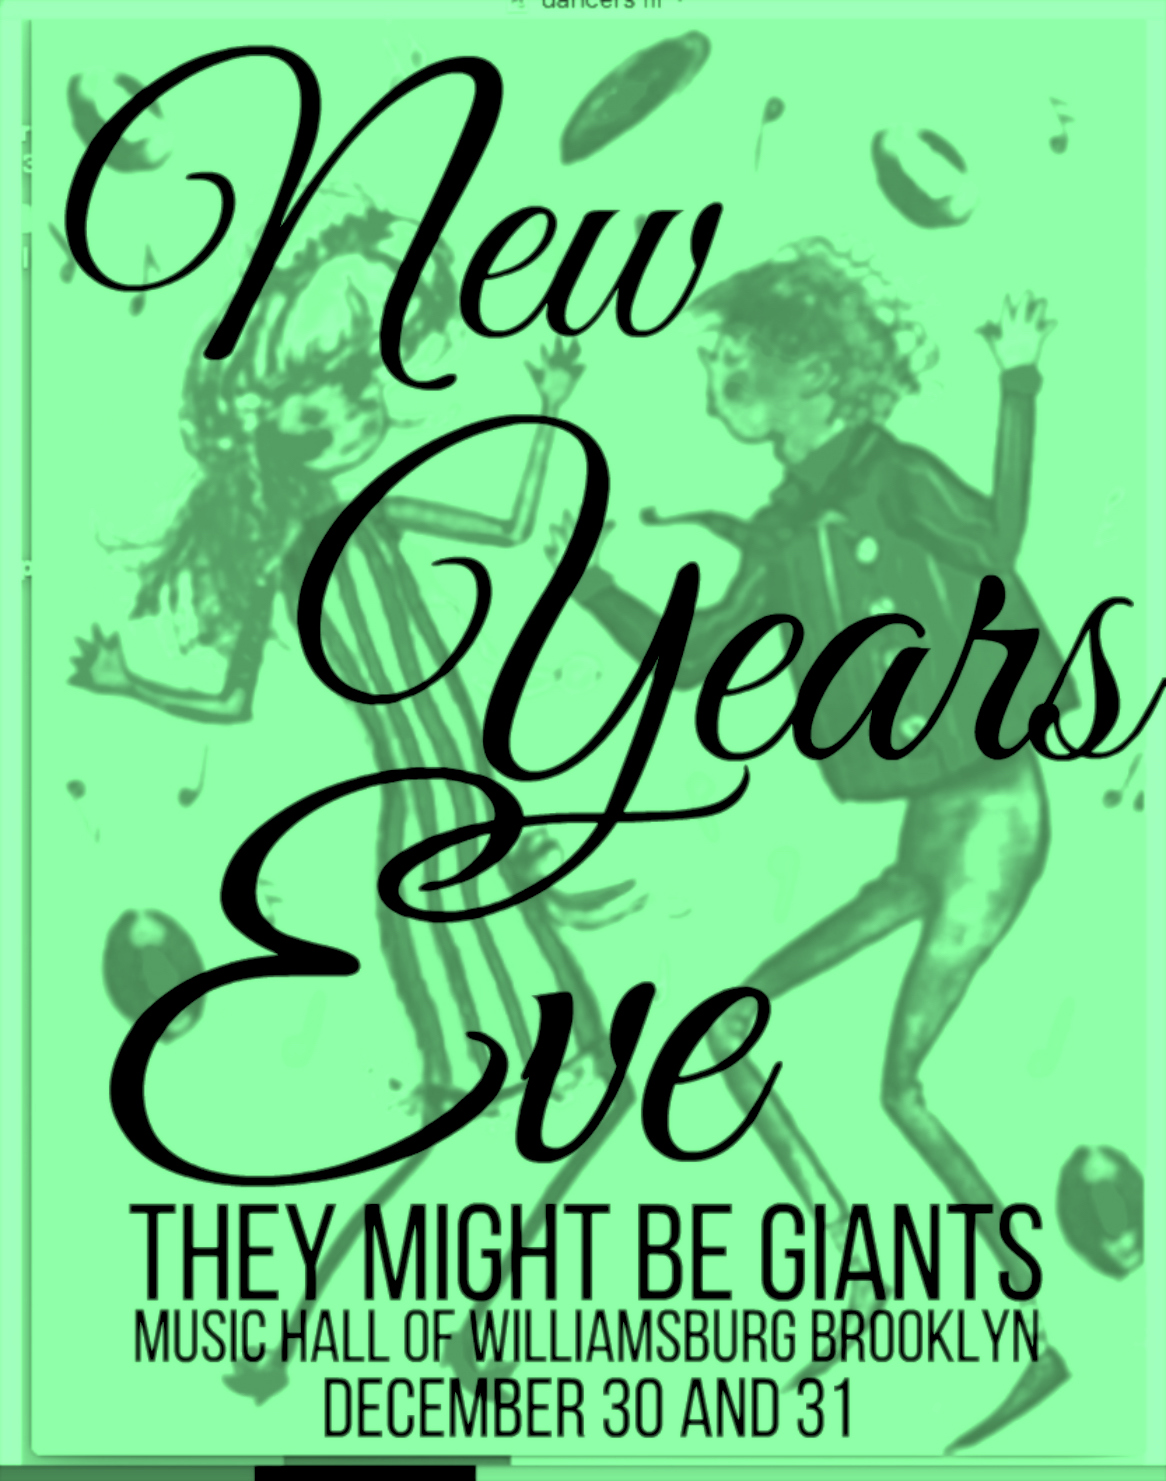 On sale now-NYE shows Dec. 30th and 31st  http://bit.ly/2xaJbYg